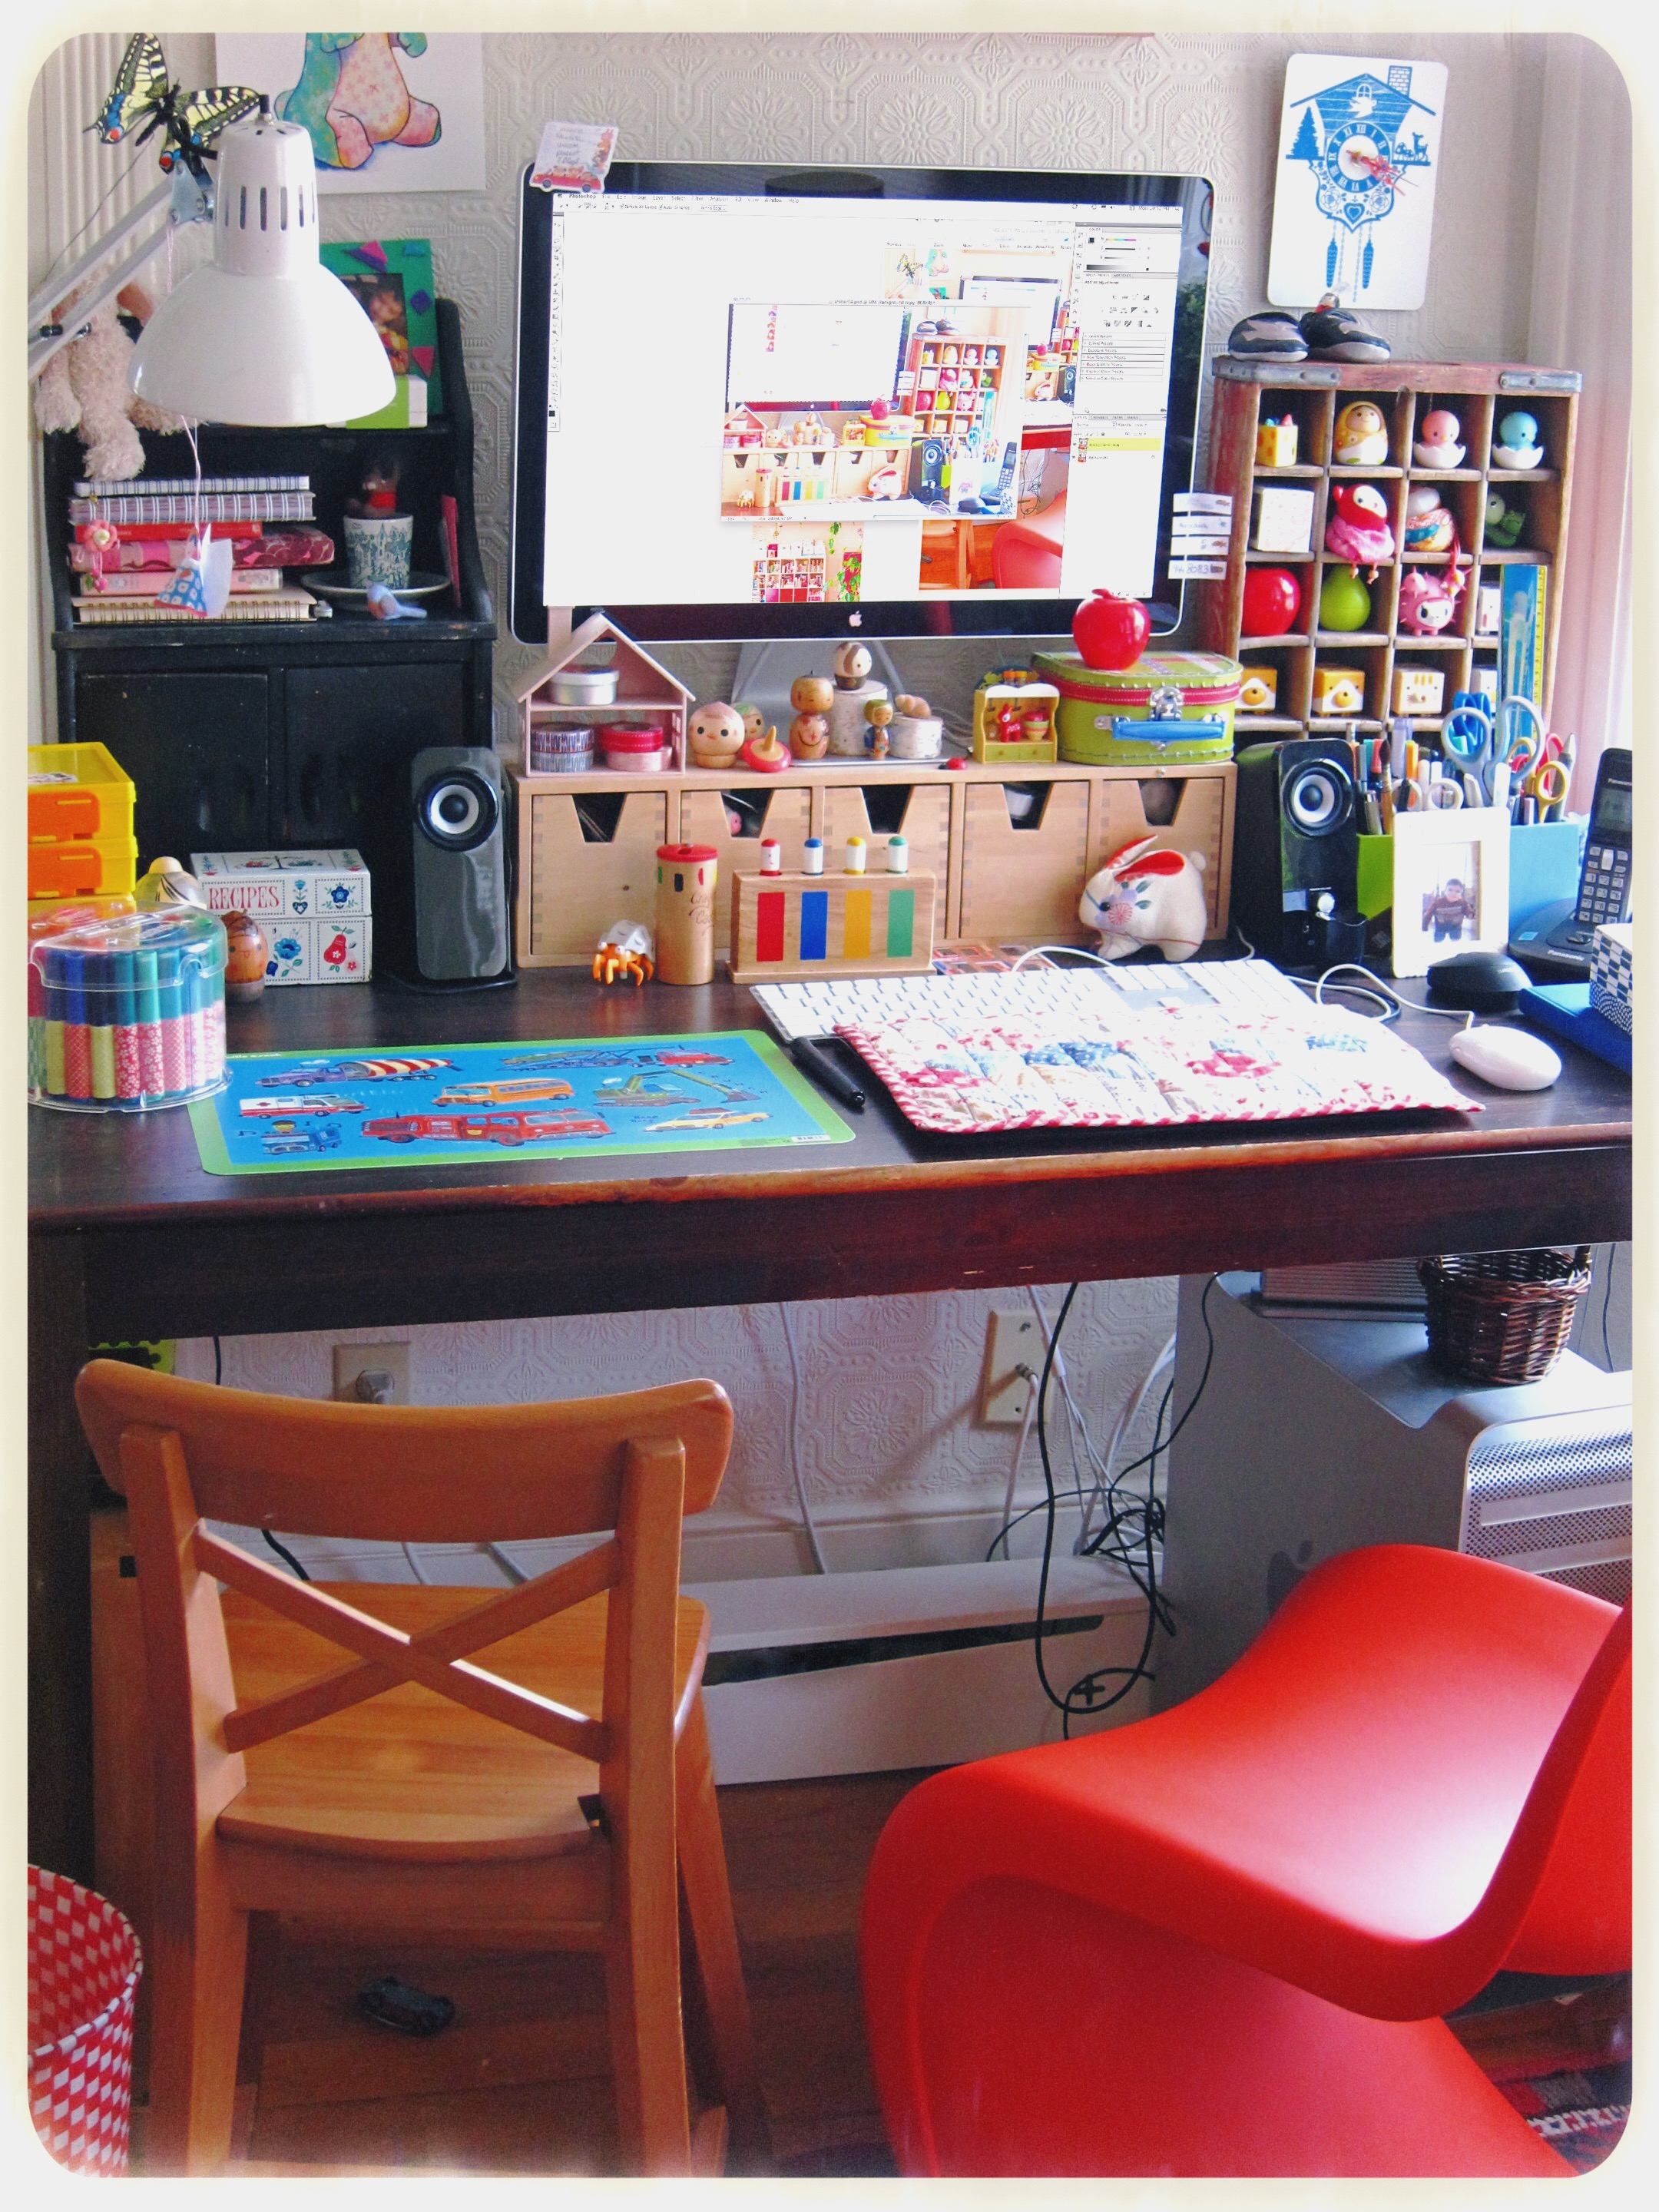 I have a kitchen table as a desk so there's room enough for me and my son. Note the high chair, and the tiny quilt to protect my Wacom tablet! This table has seen it all : from the first crayons to the first lego, and homework still.